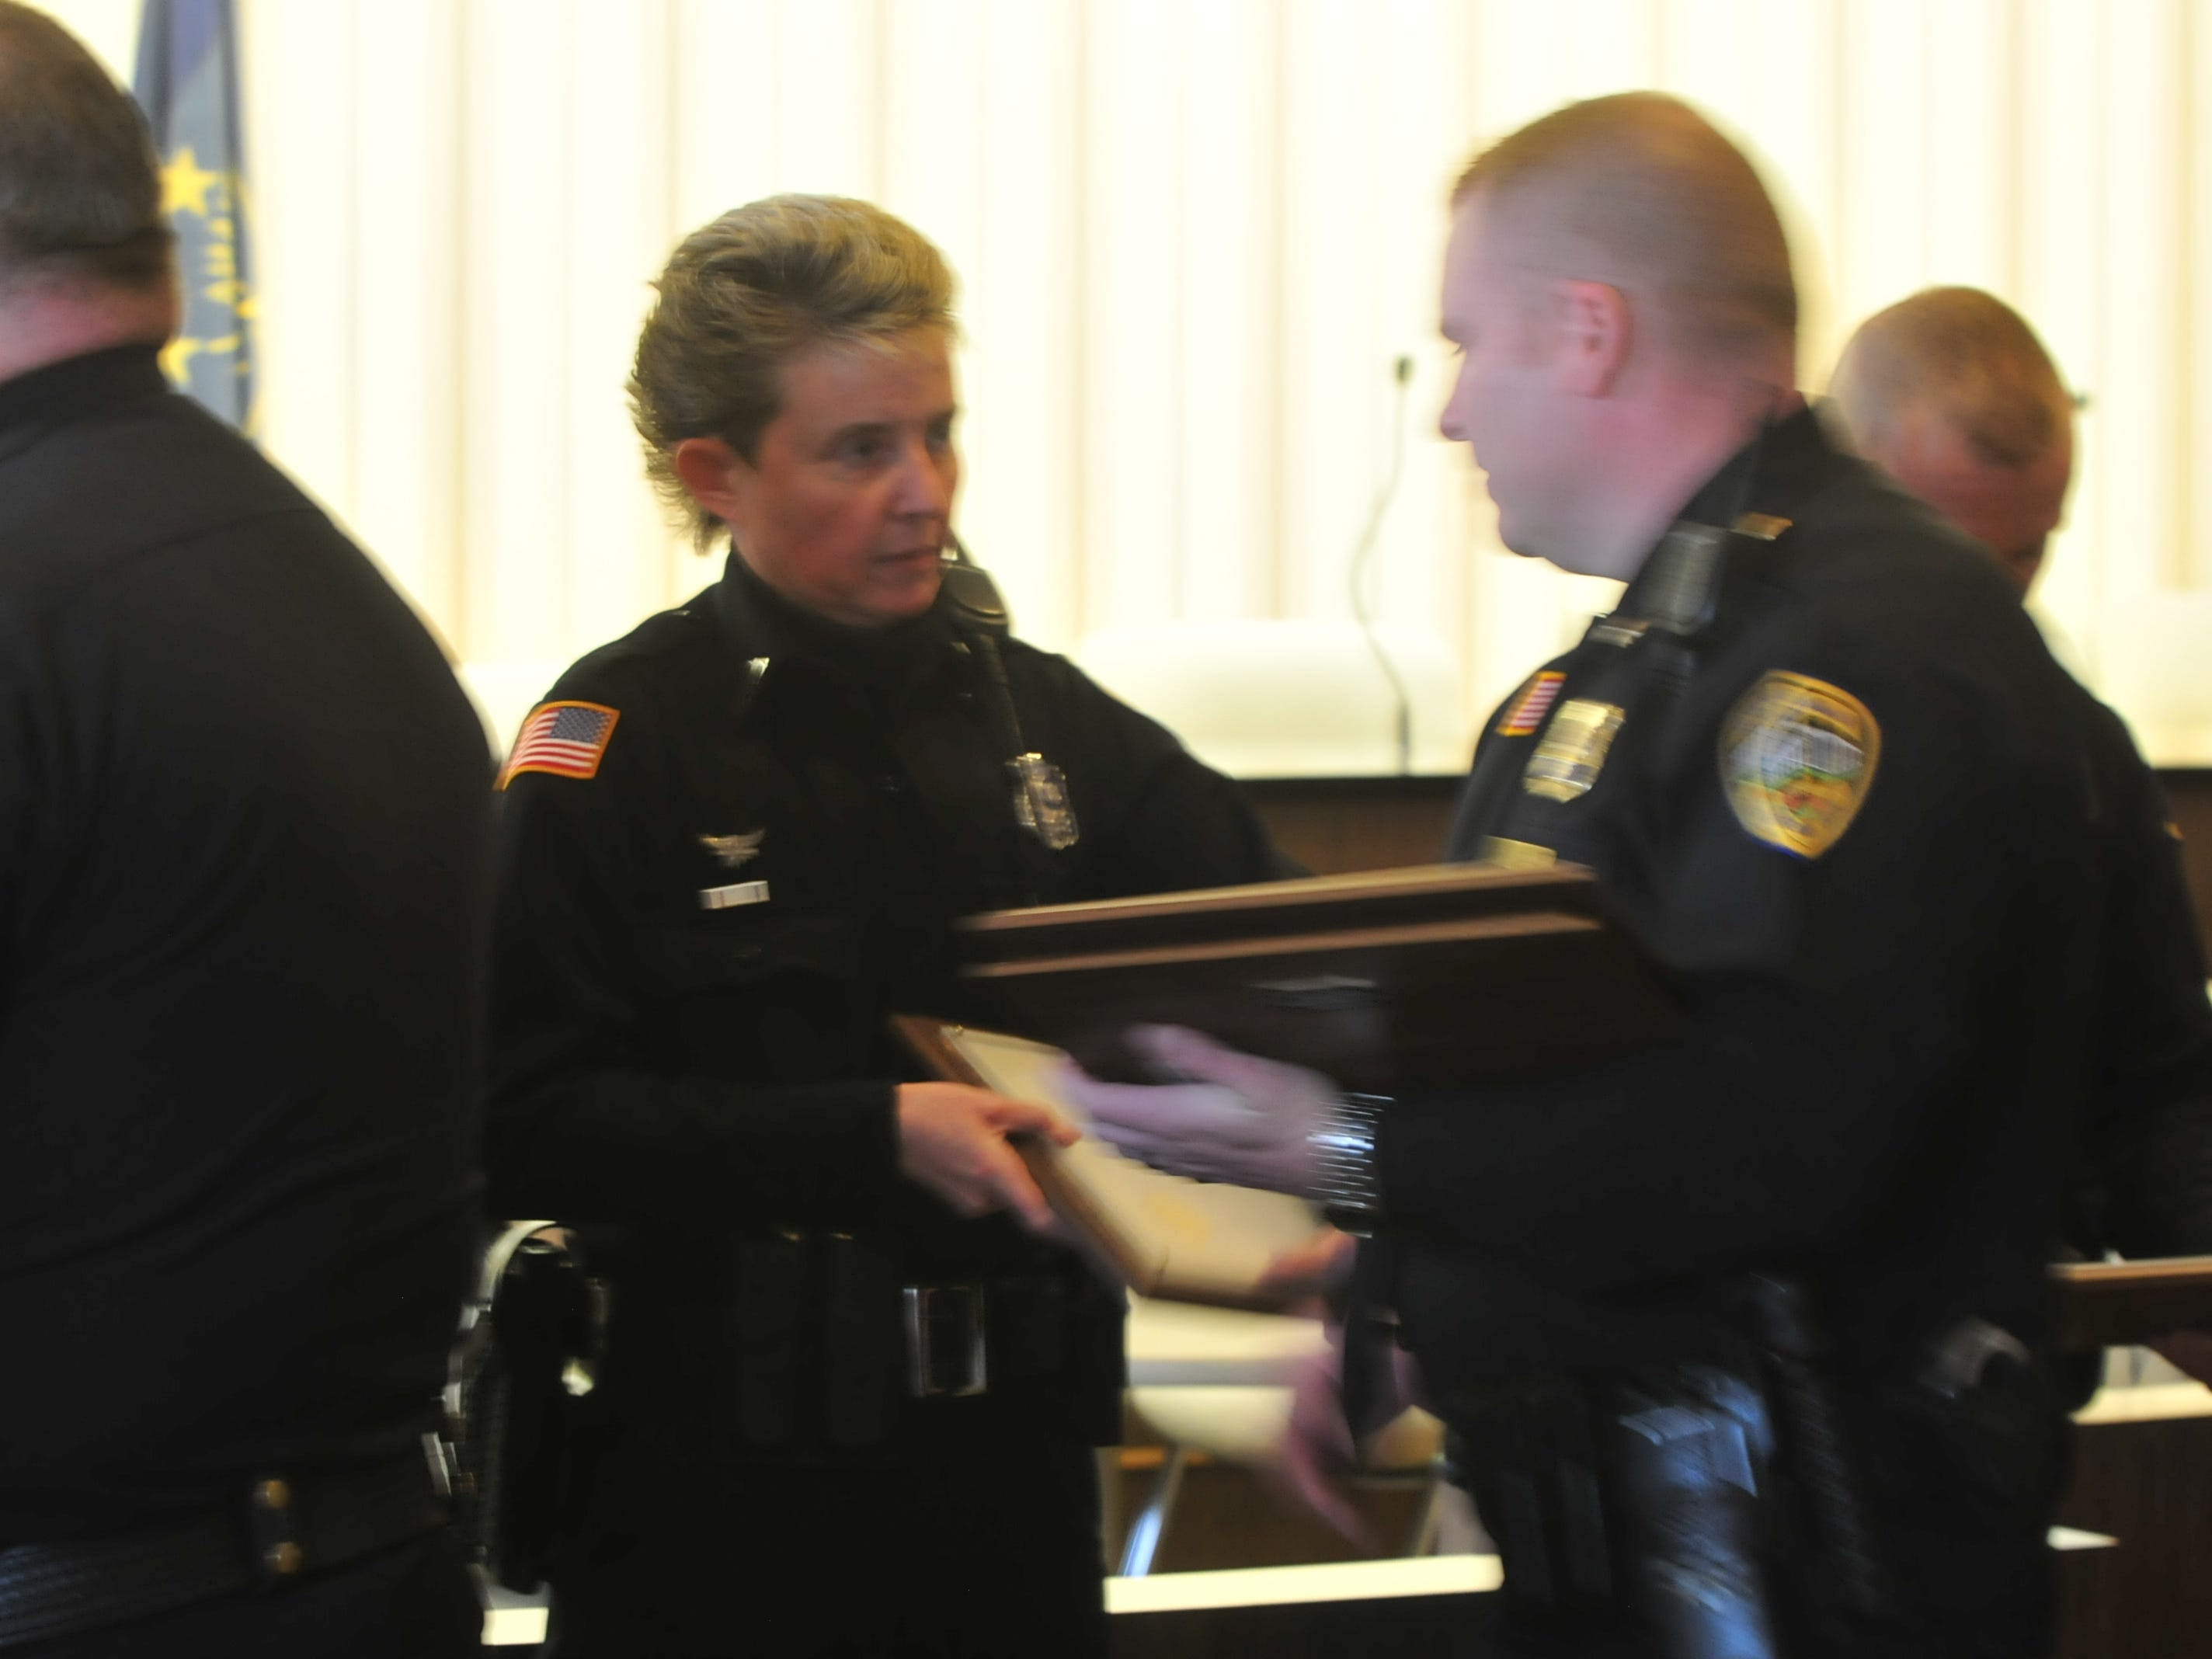 Officer Ami Miller is presented a Police Star award by Major Jon Bales on Monday.